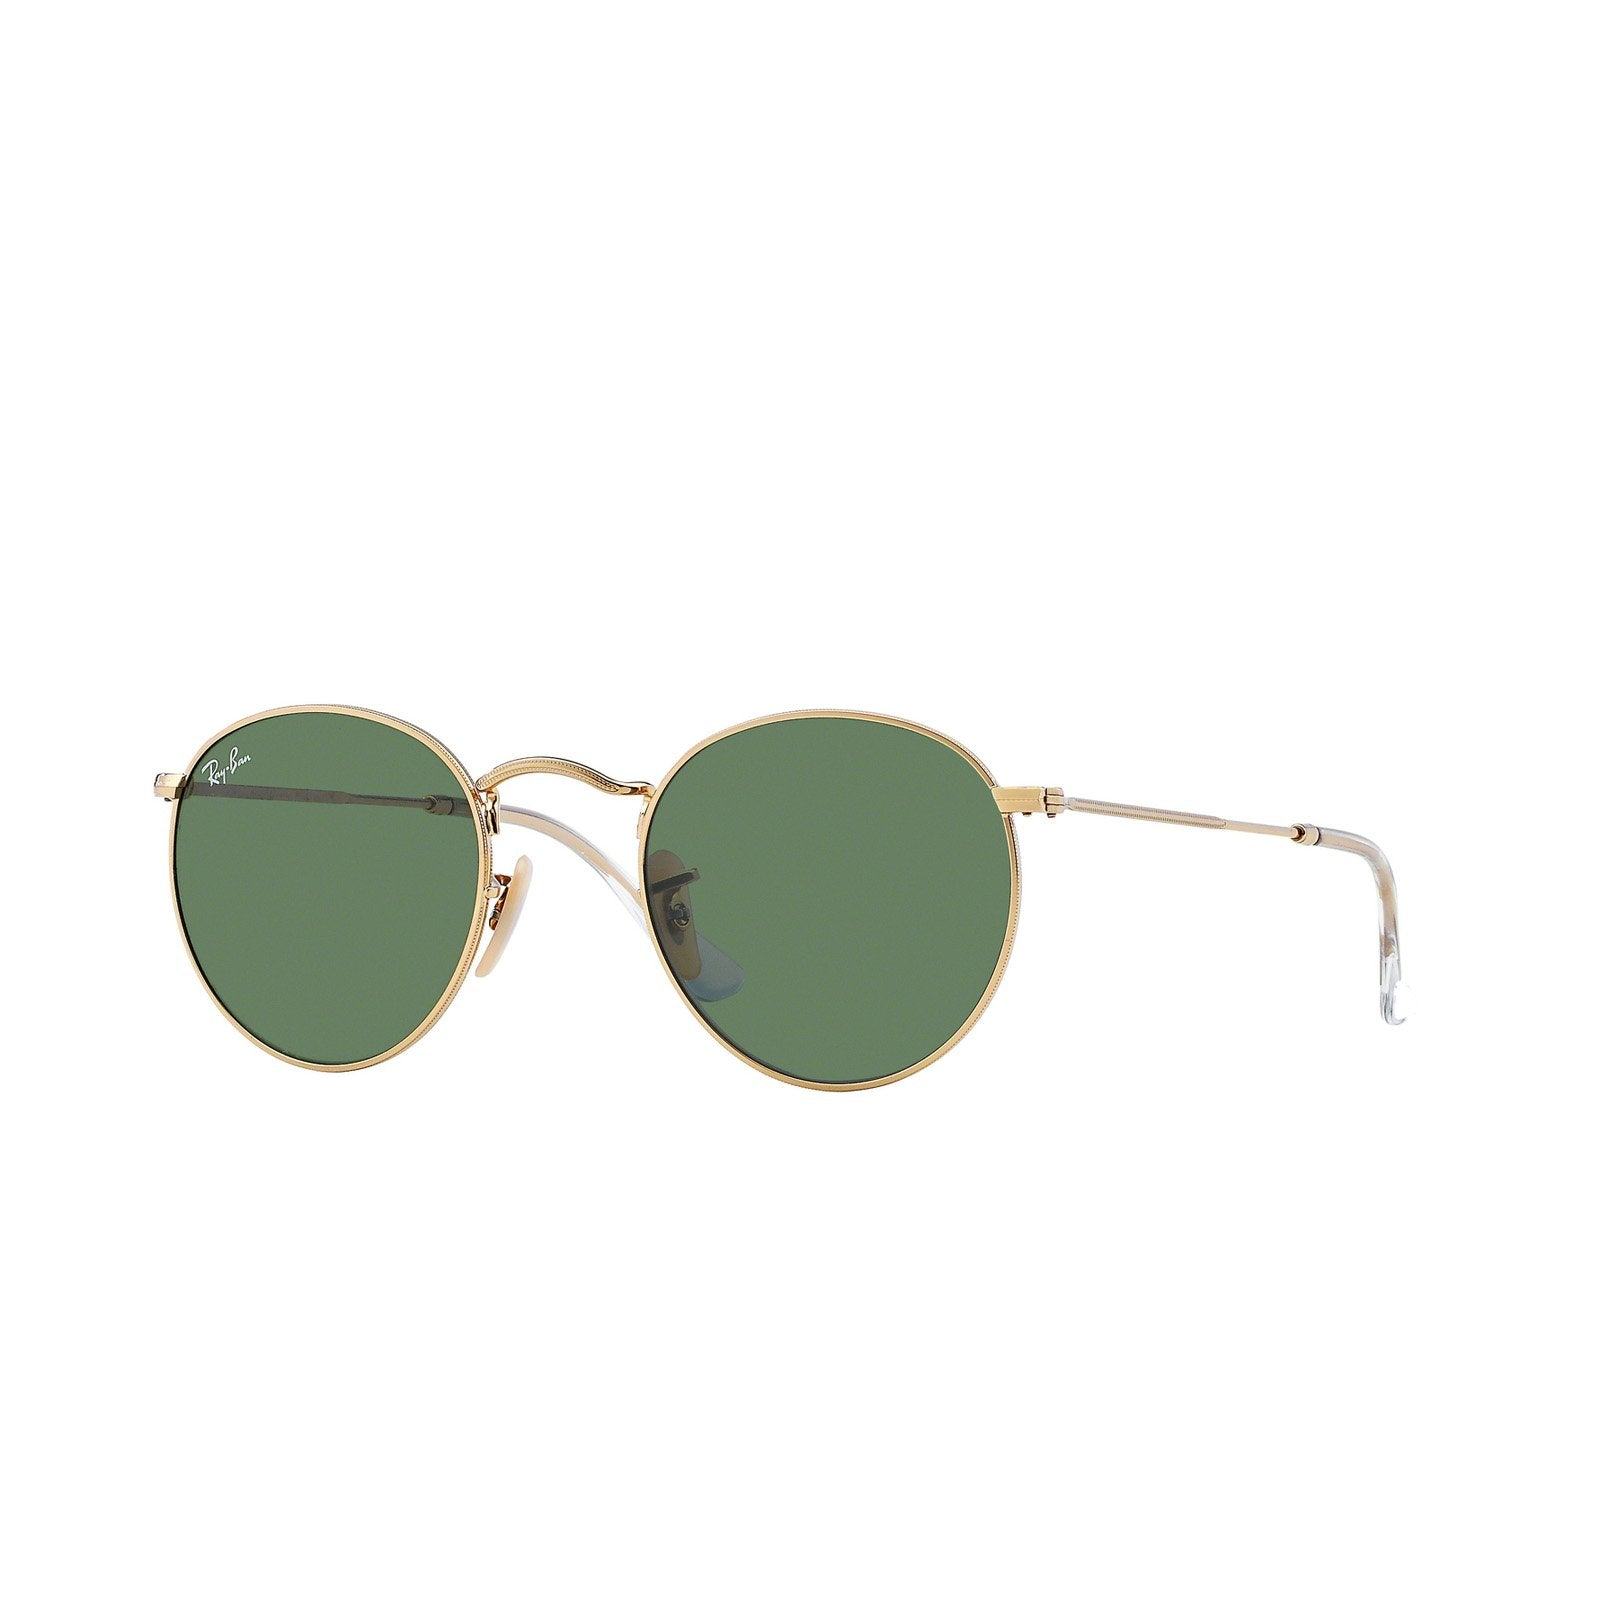 Ray-Ban RB3447 001 Sunglasses